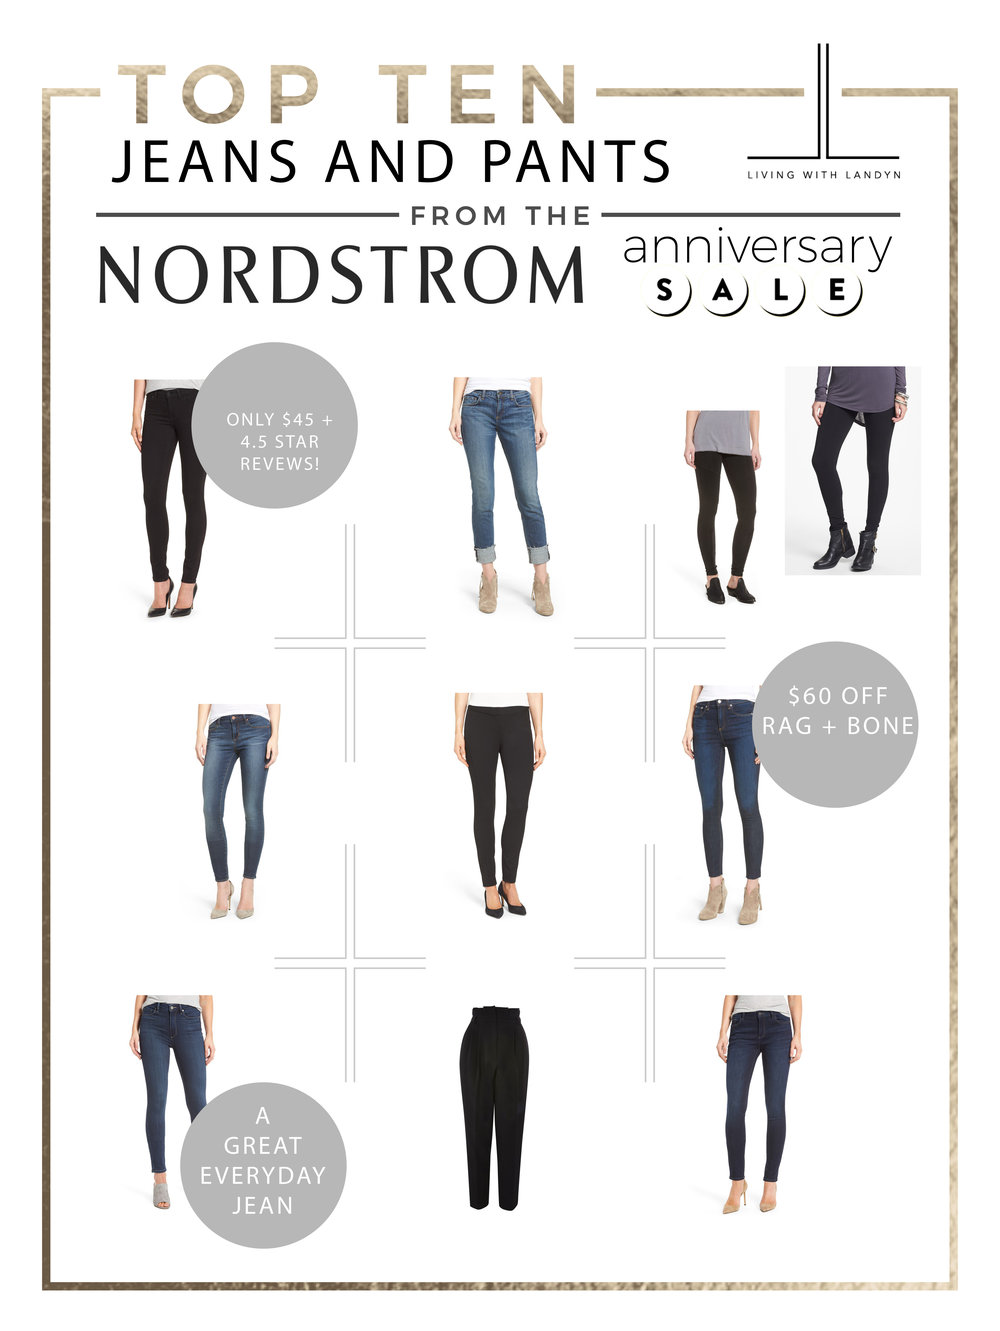 TOP 10 JEANS AND PANTS FROM THE NORDSTROM ANNIVERSARY SALE